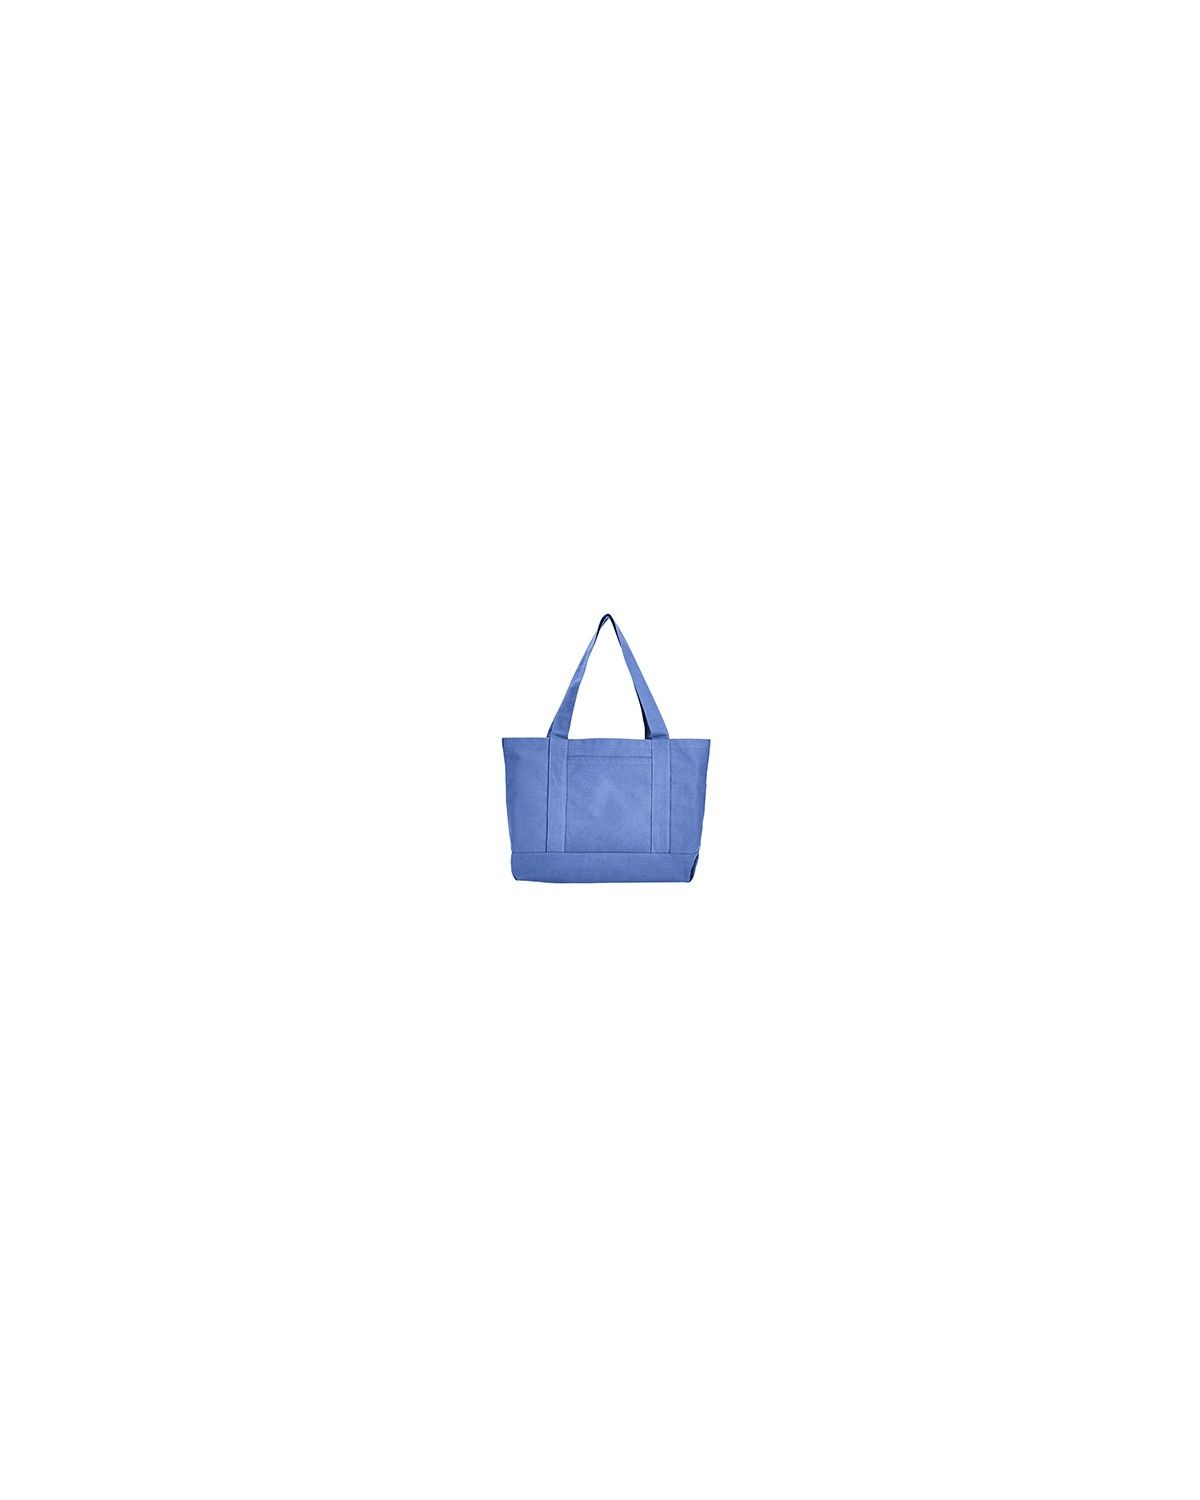 8870 Liberty Bags PERIWINKLE BLUE